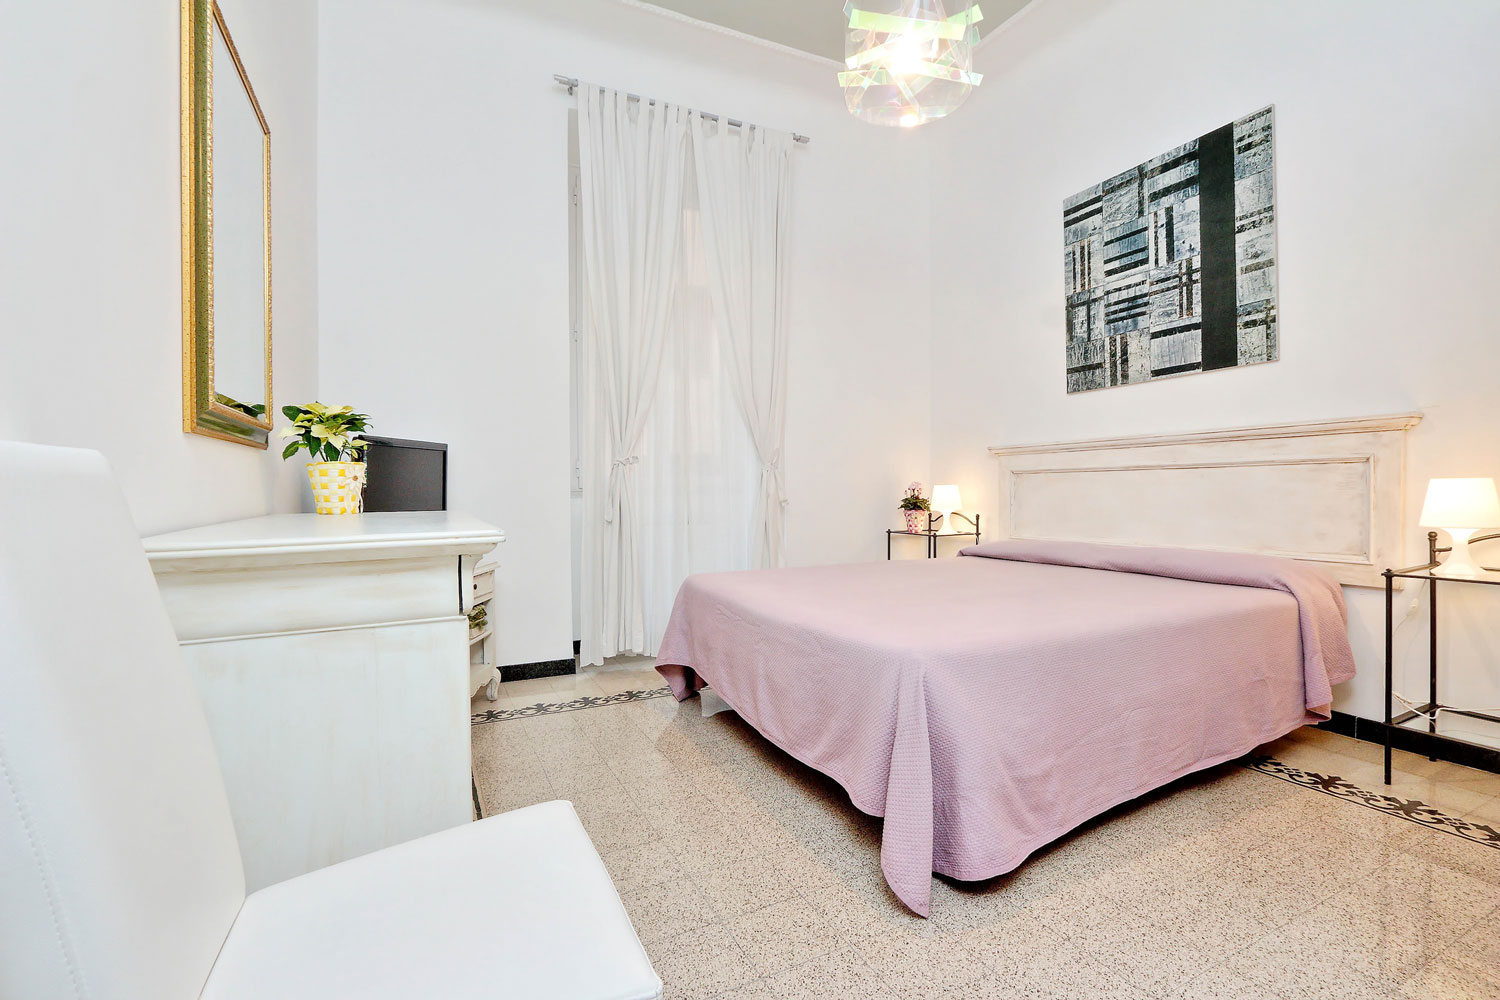 Flat for Rent close to Colosseum